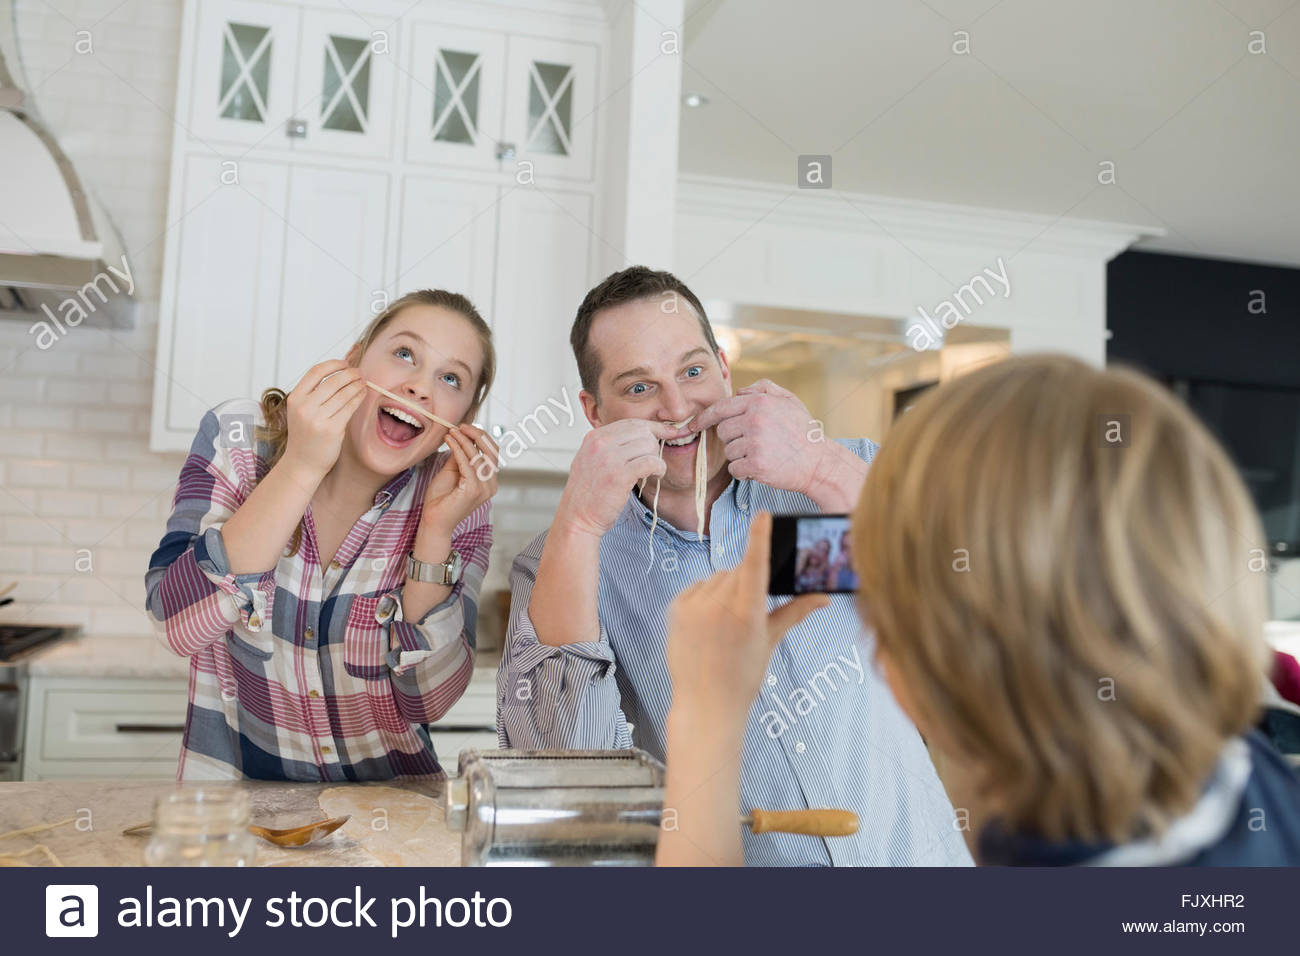 Playful family with long noodle mustaches in kitchen - Stock Image